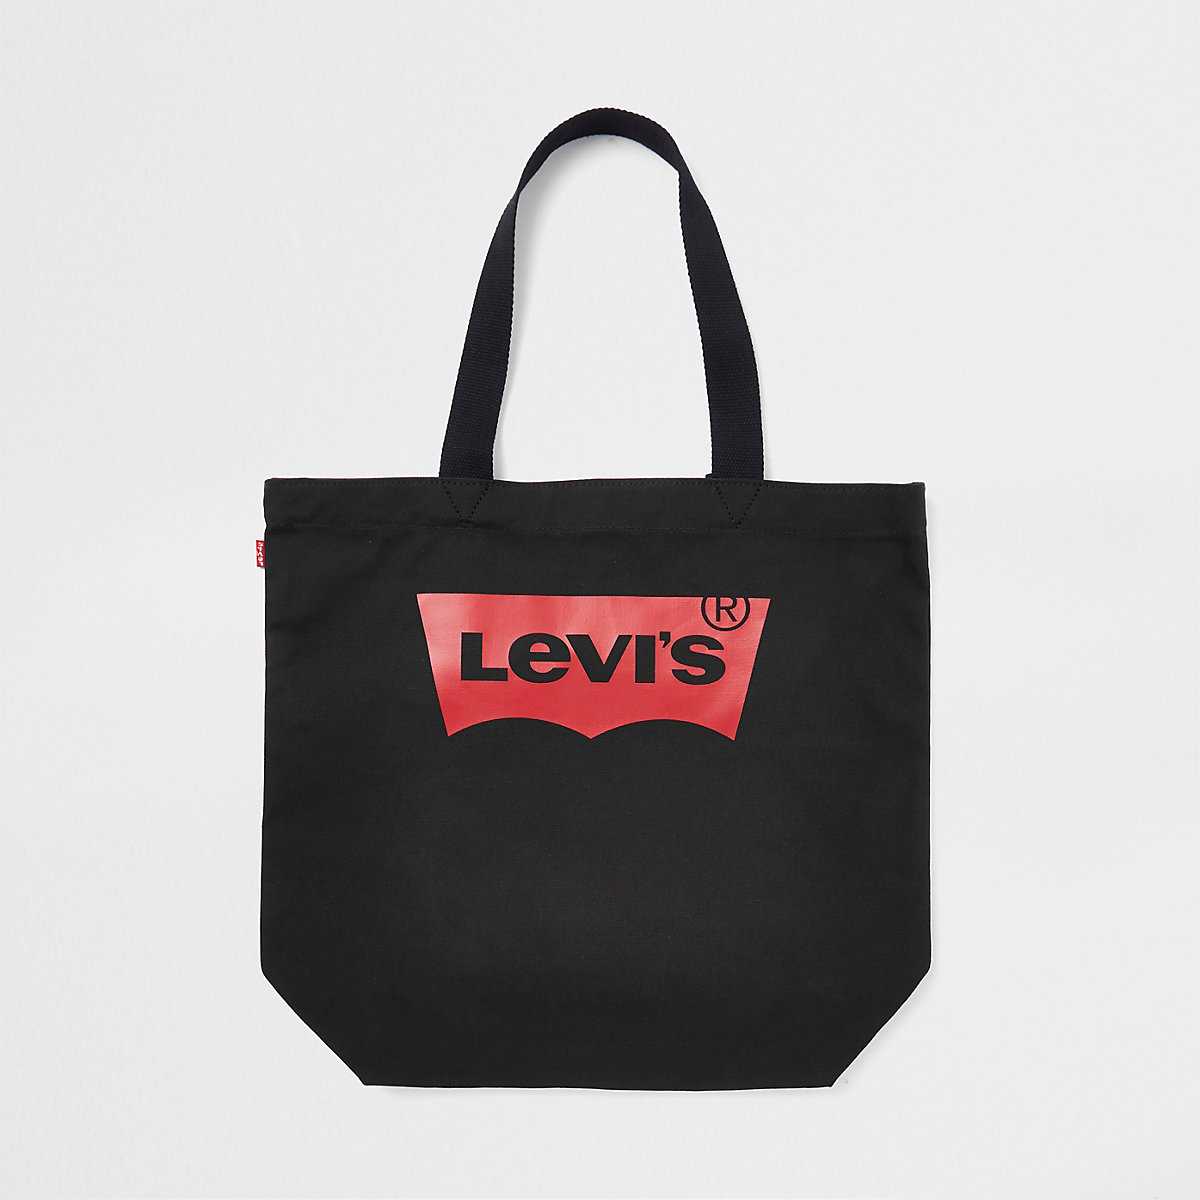 Levi's black tote bag